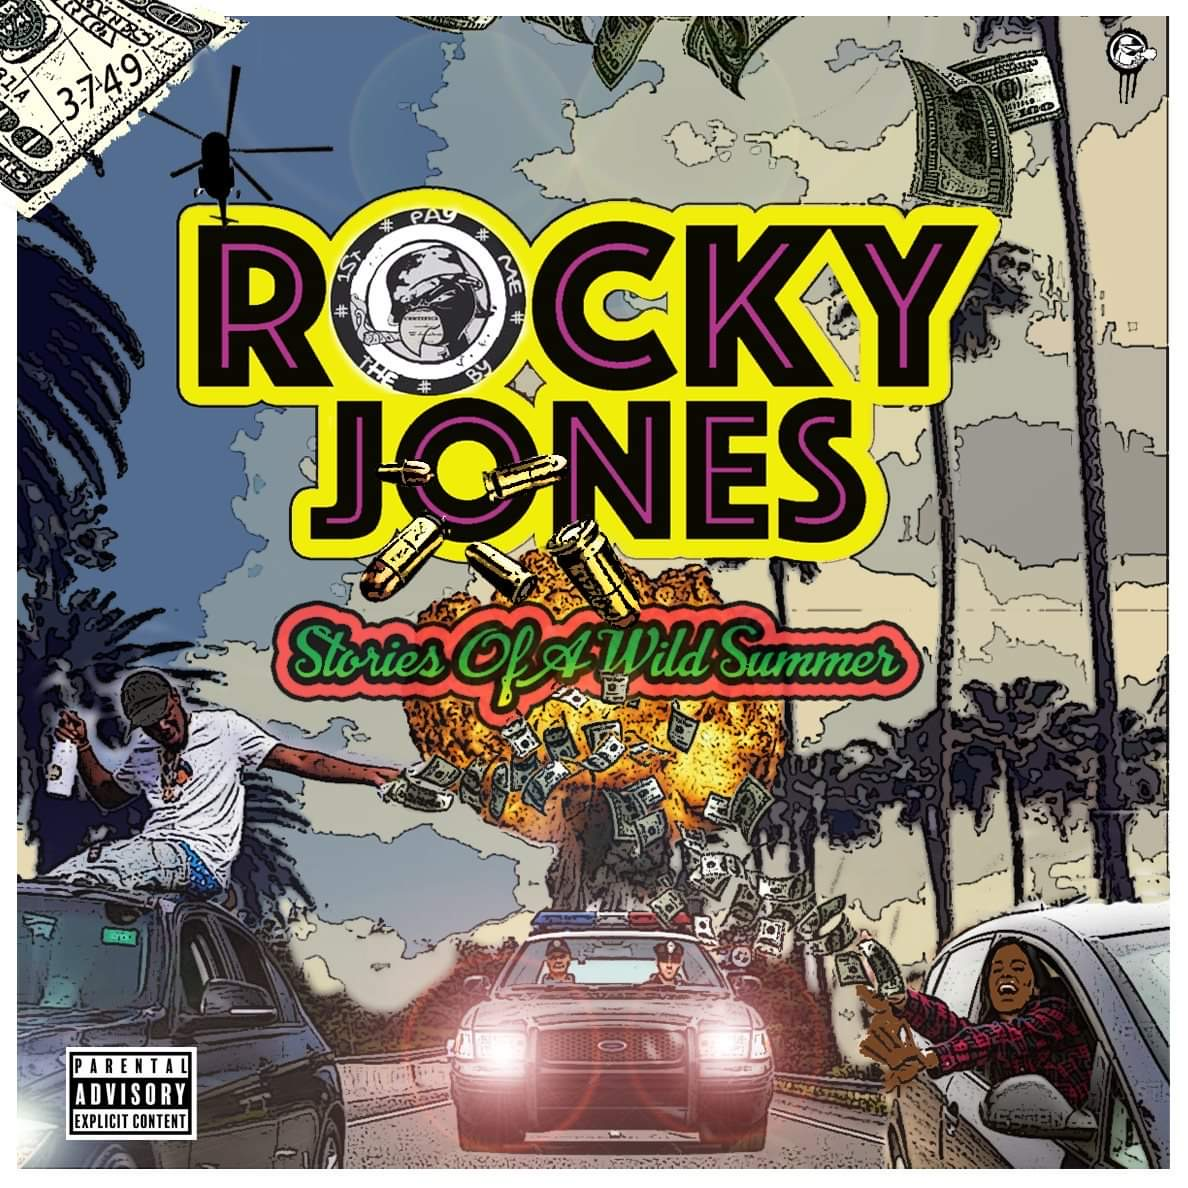 [EP] Rocky Jones 'Stories of a Wild Summer' | @rockyjones3749